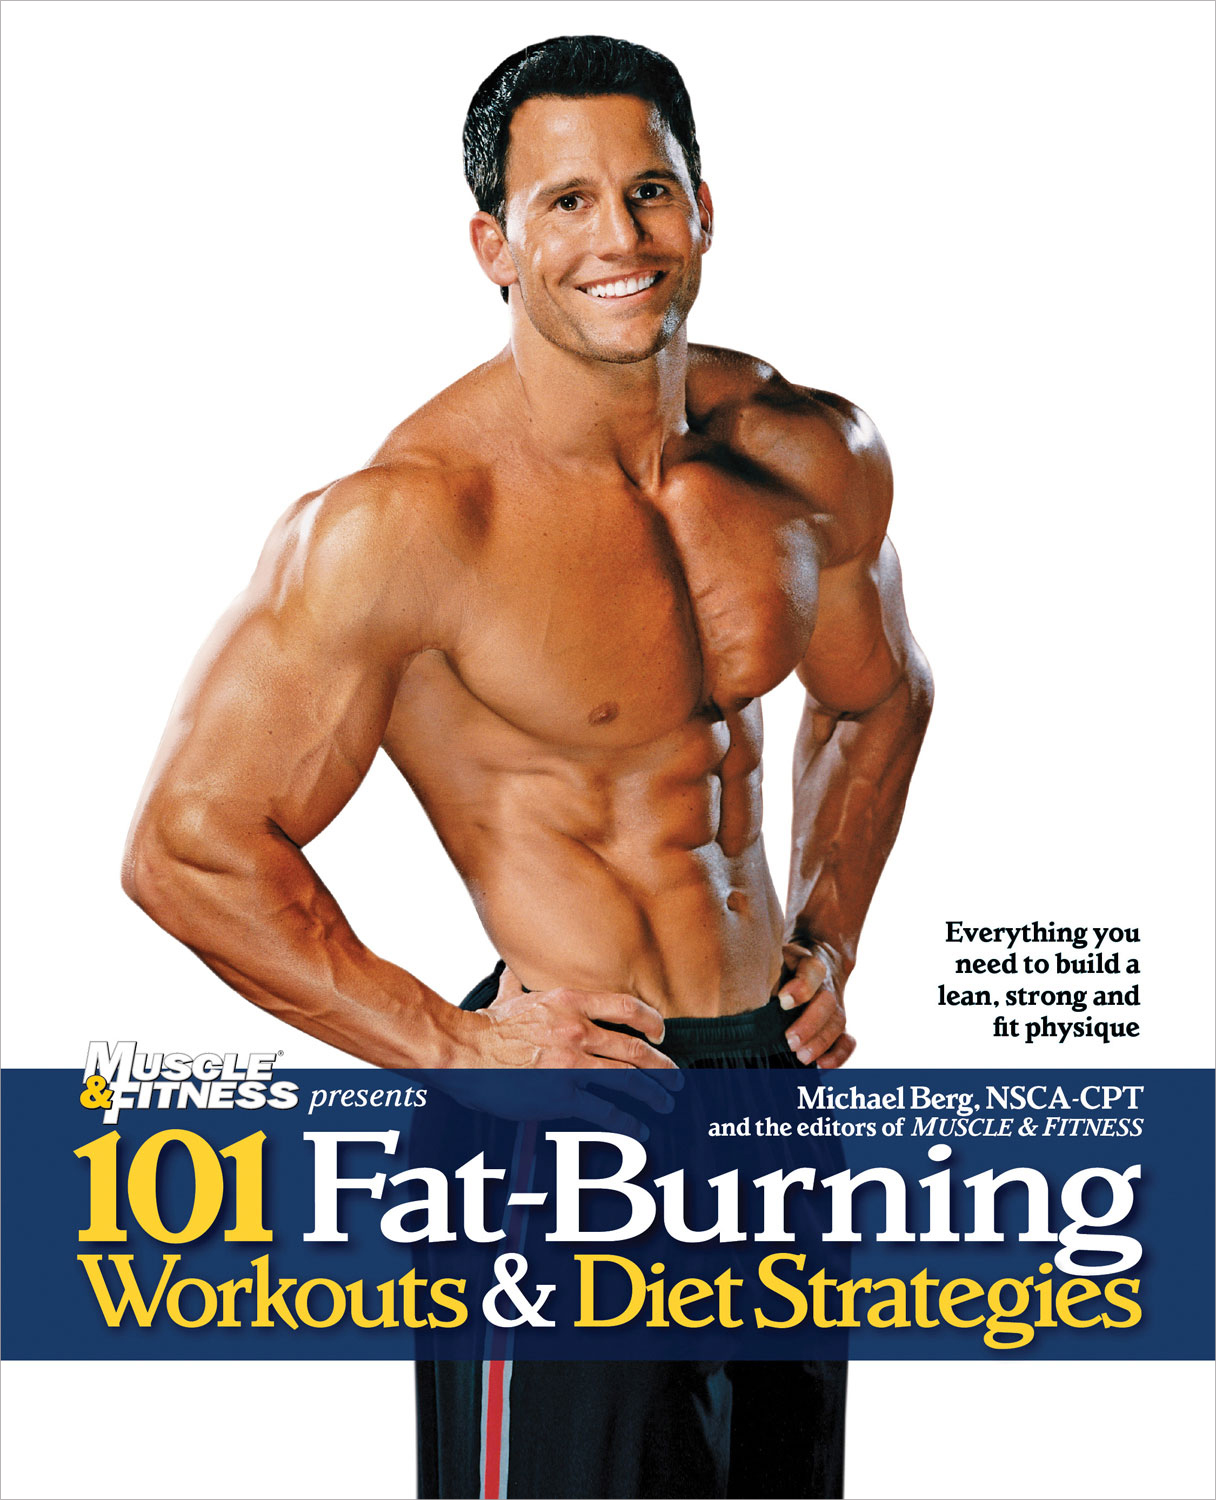 101 Fat-Burning Workouts & Diet Strategies For Men Everything You Need to Get a Lean, Strong and Fit Physique